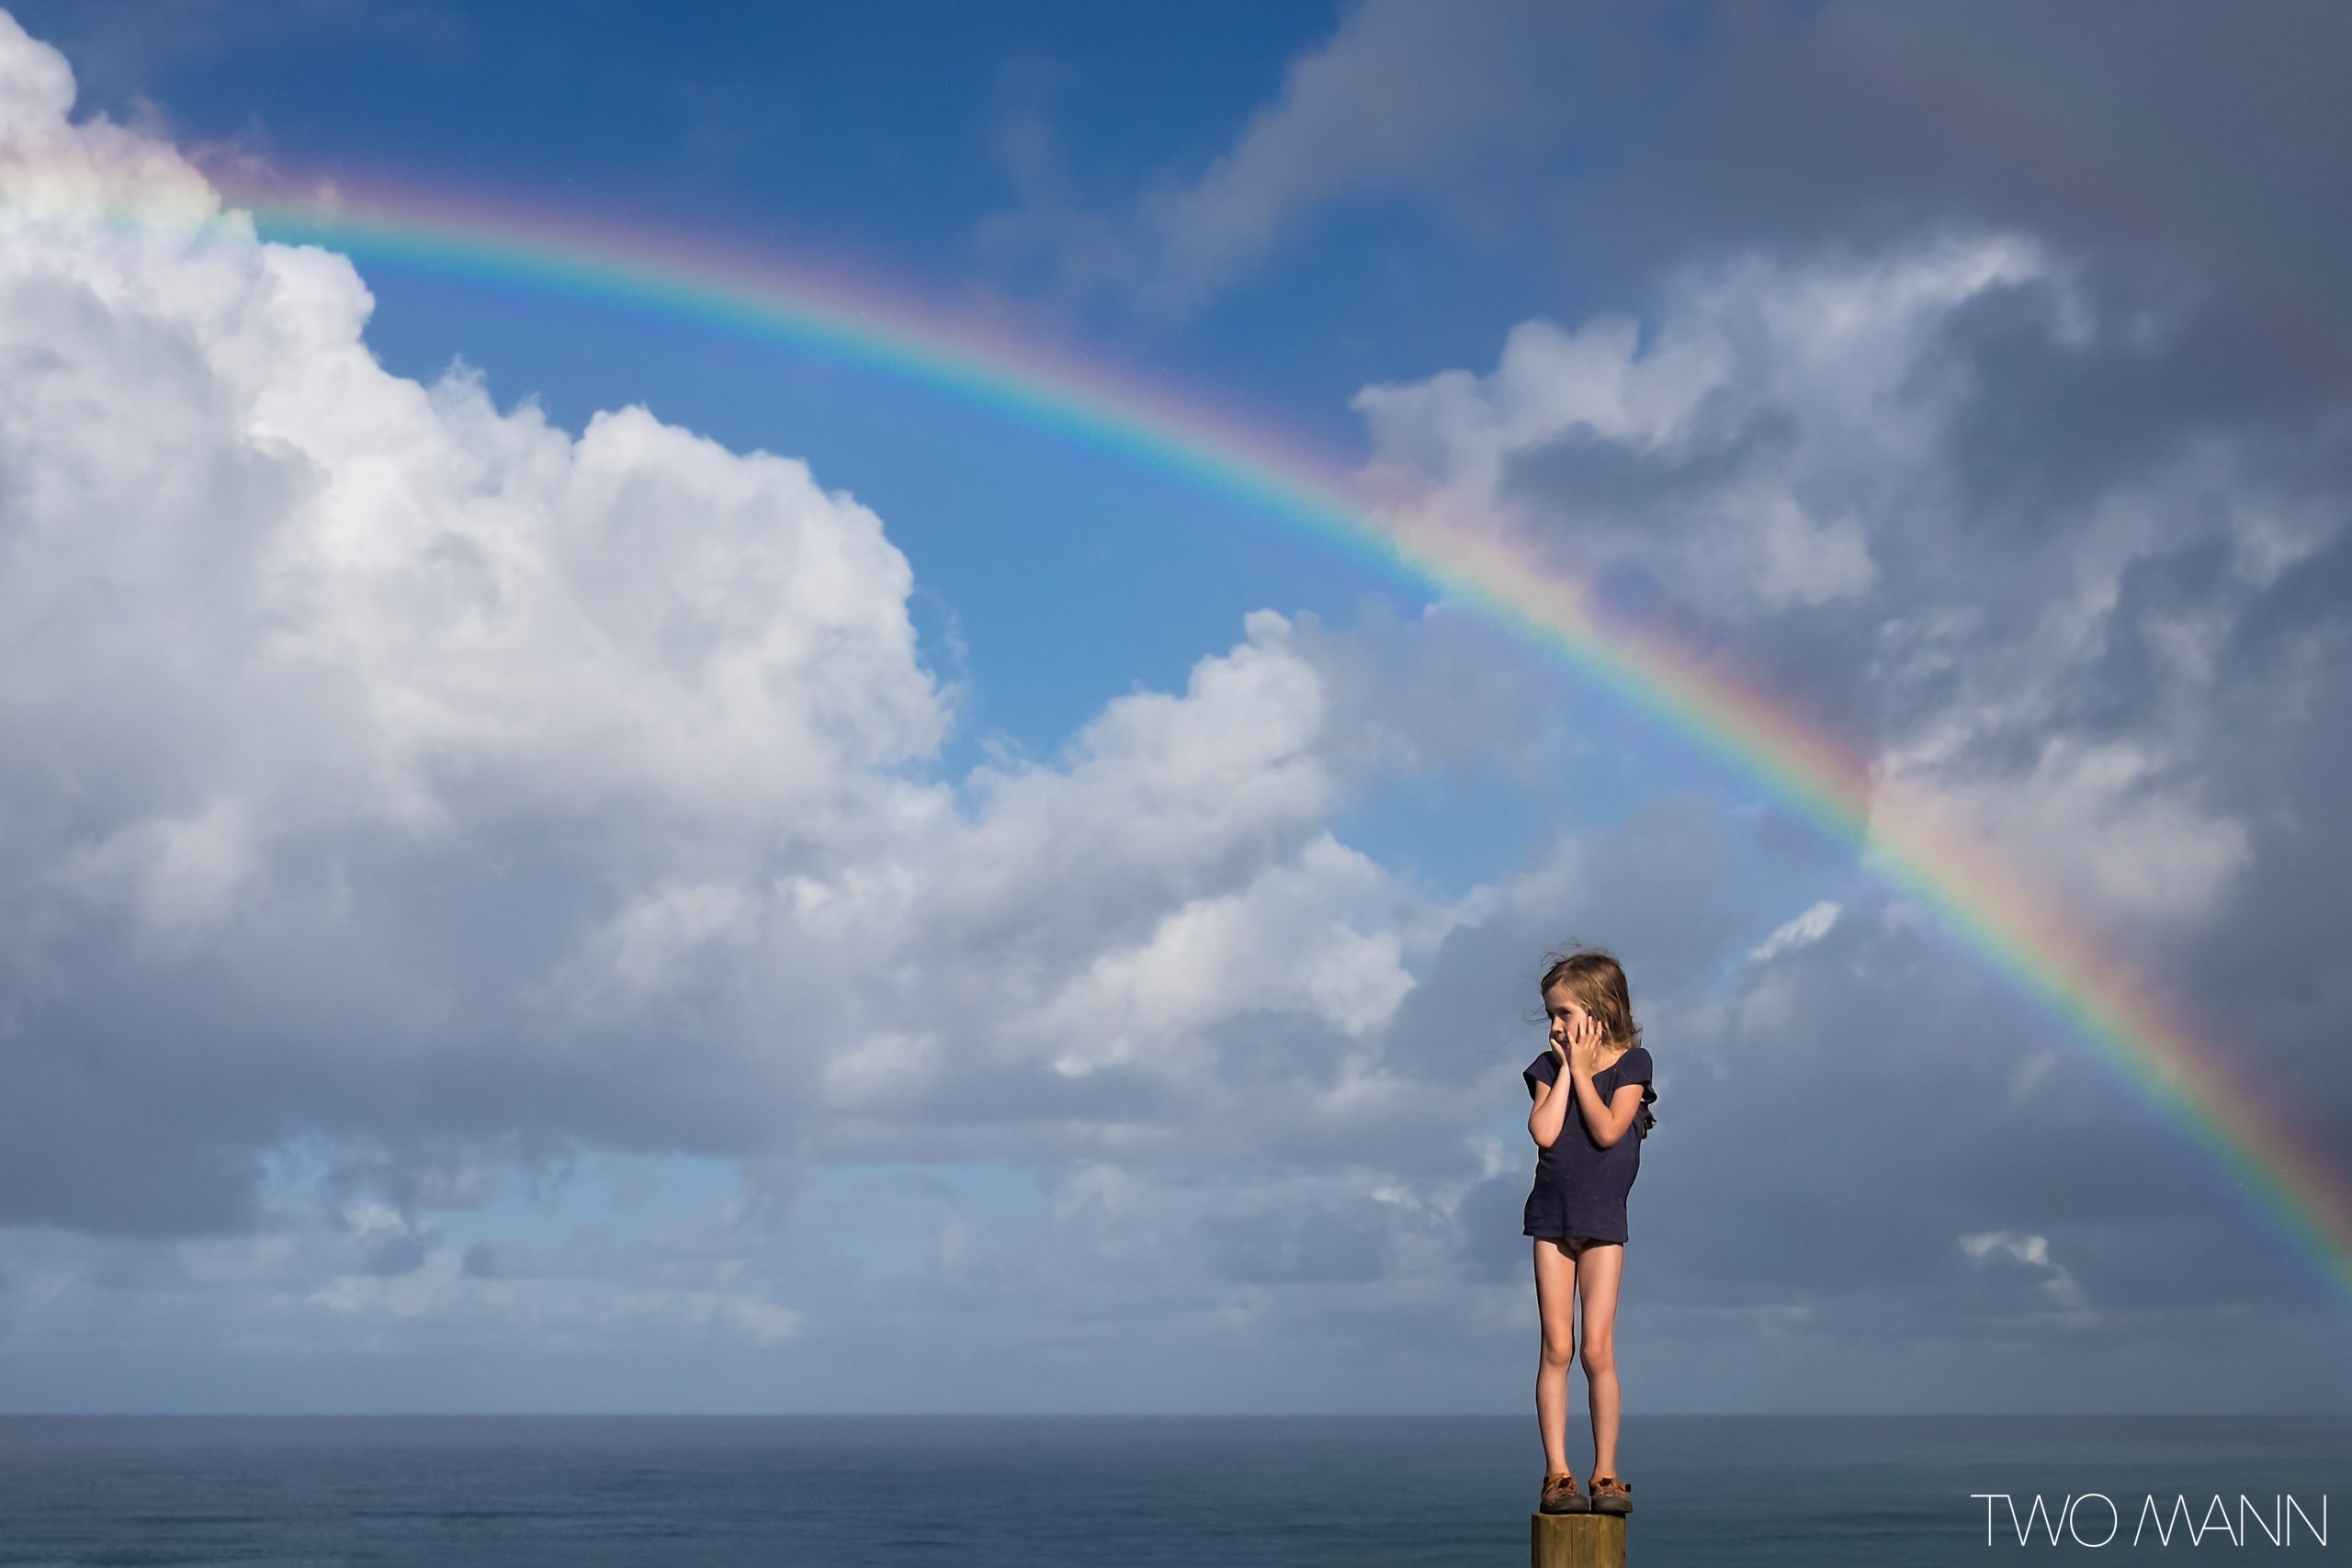 Young girl at the beach with rainbow in the sky